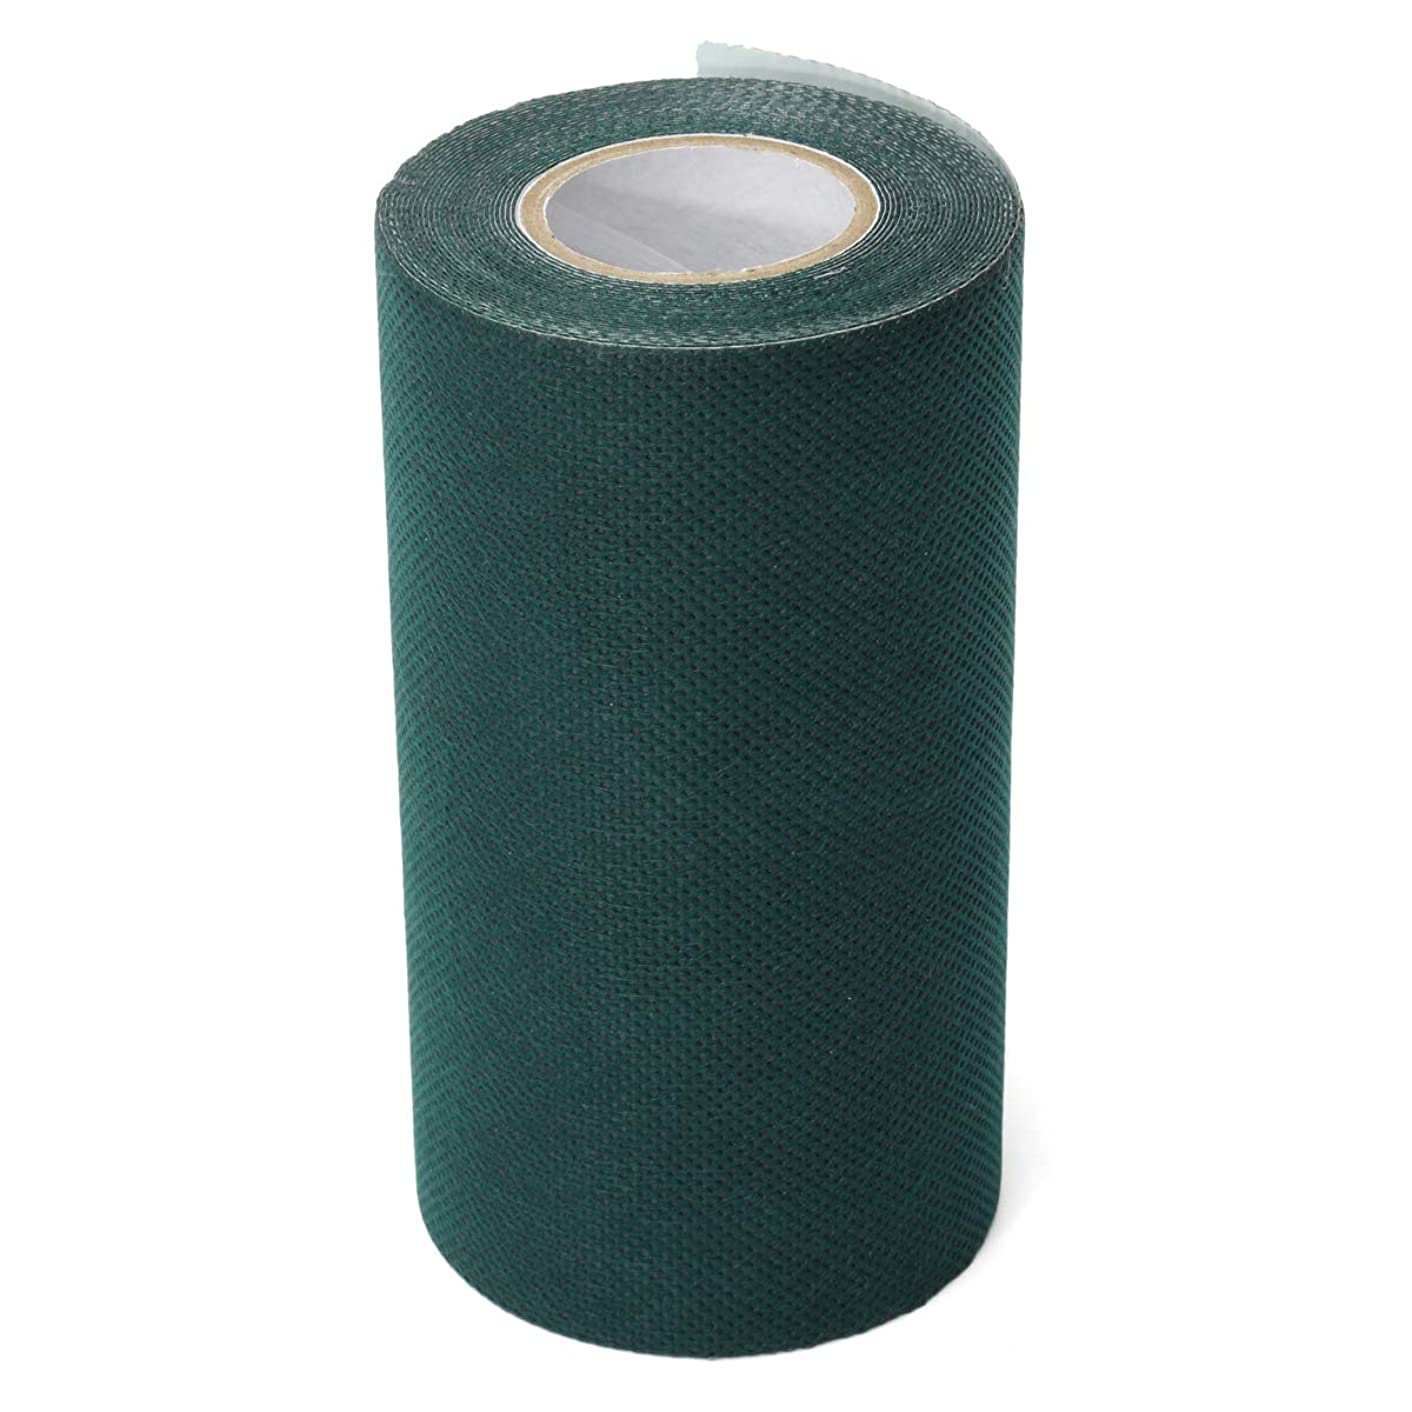 Self-adhesive Synthetic Turf Seaming Tape for Connecting Artificial Grass Together, 6